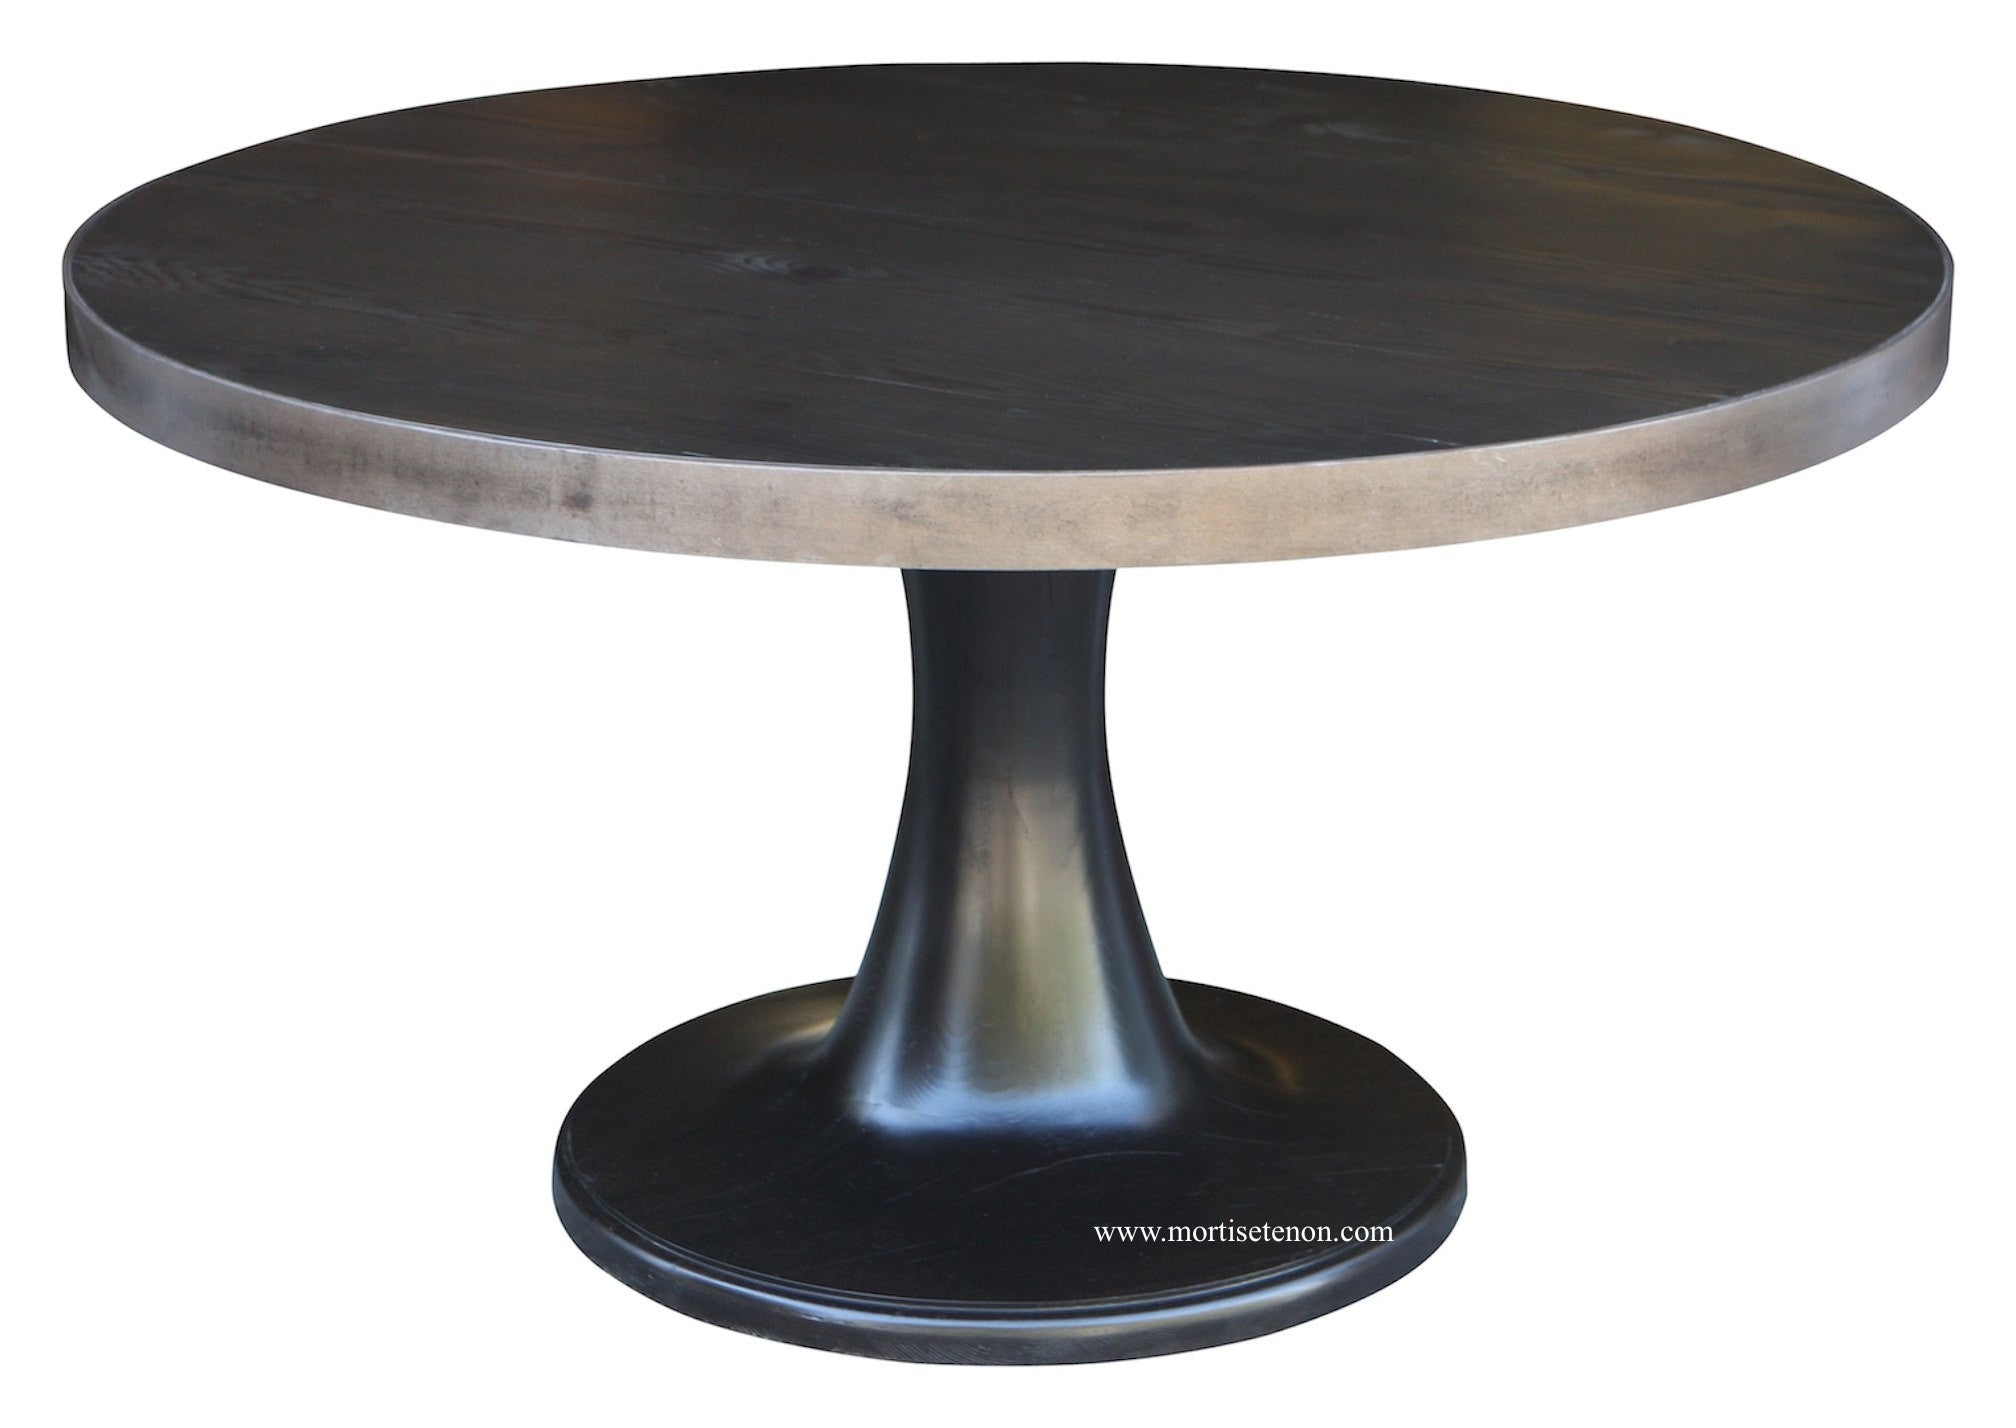 Marvelous Tulip Base Dining Table With A Metal Band Around The Top ...